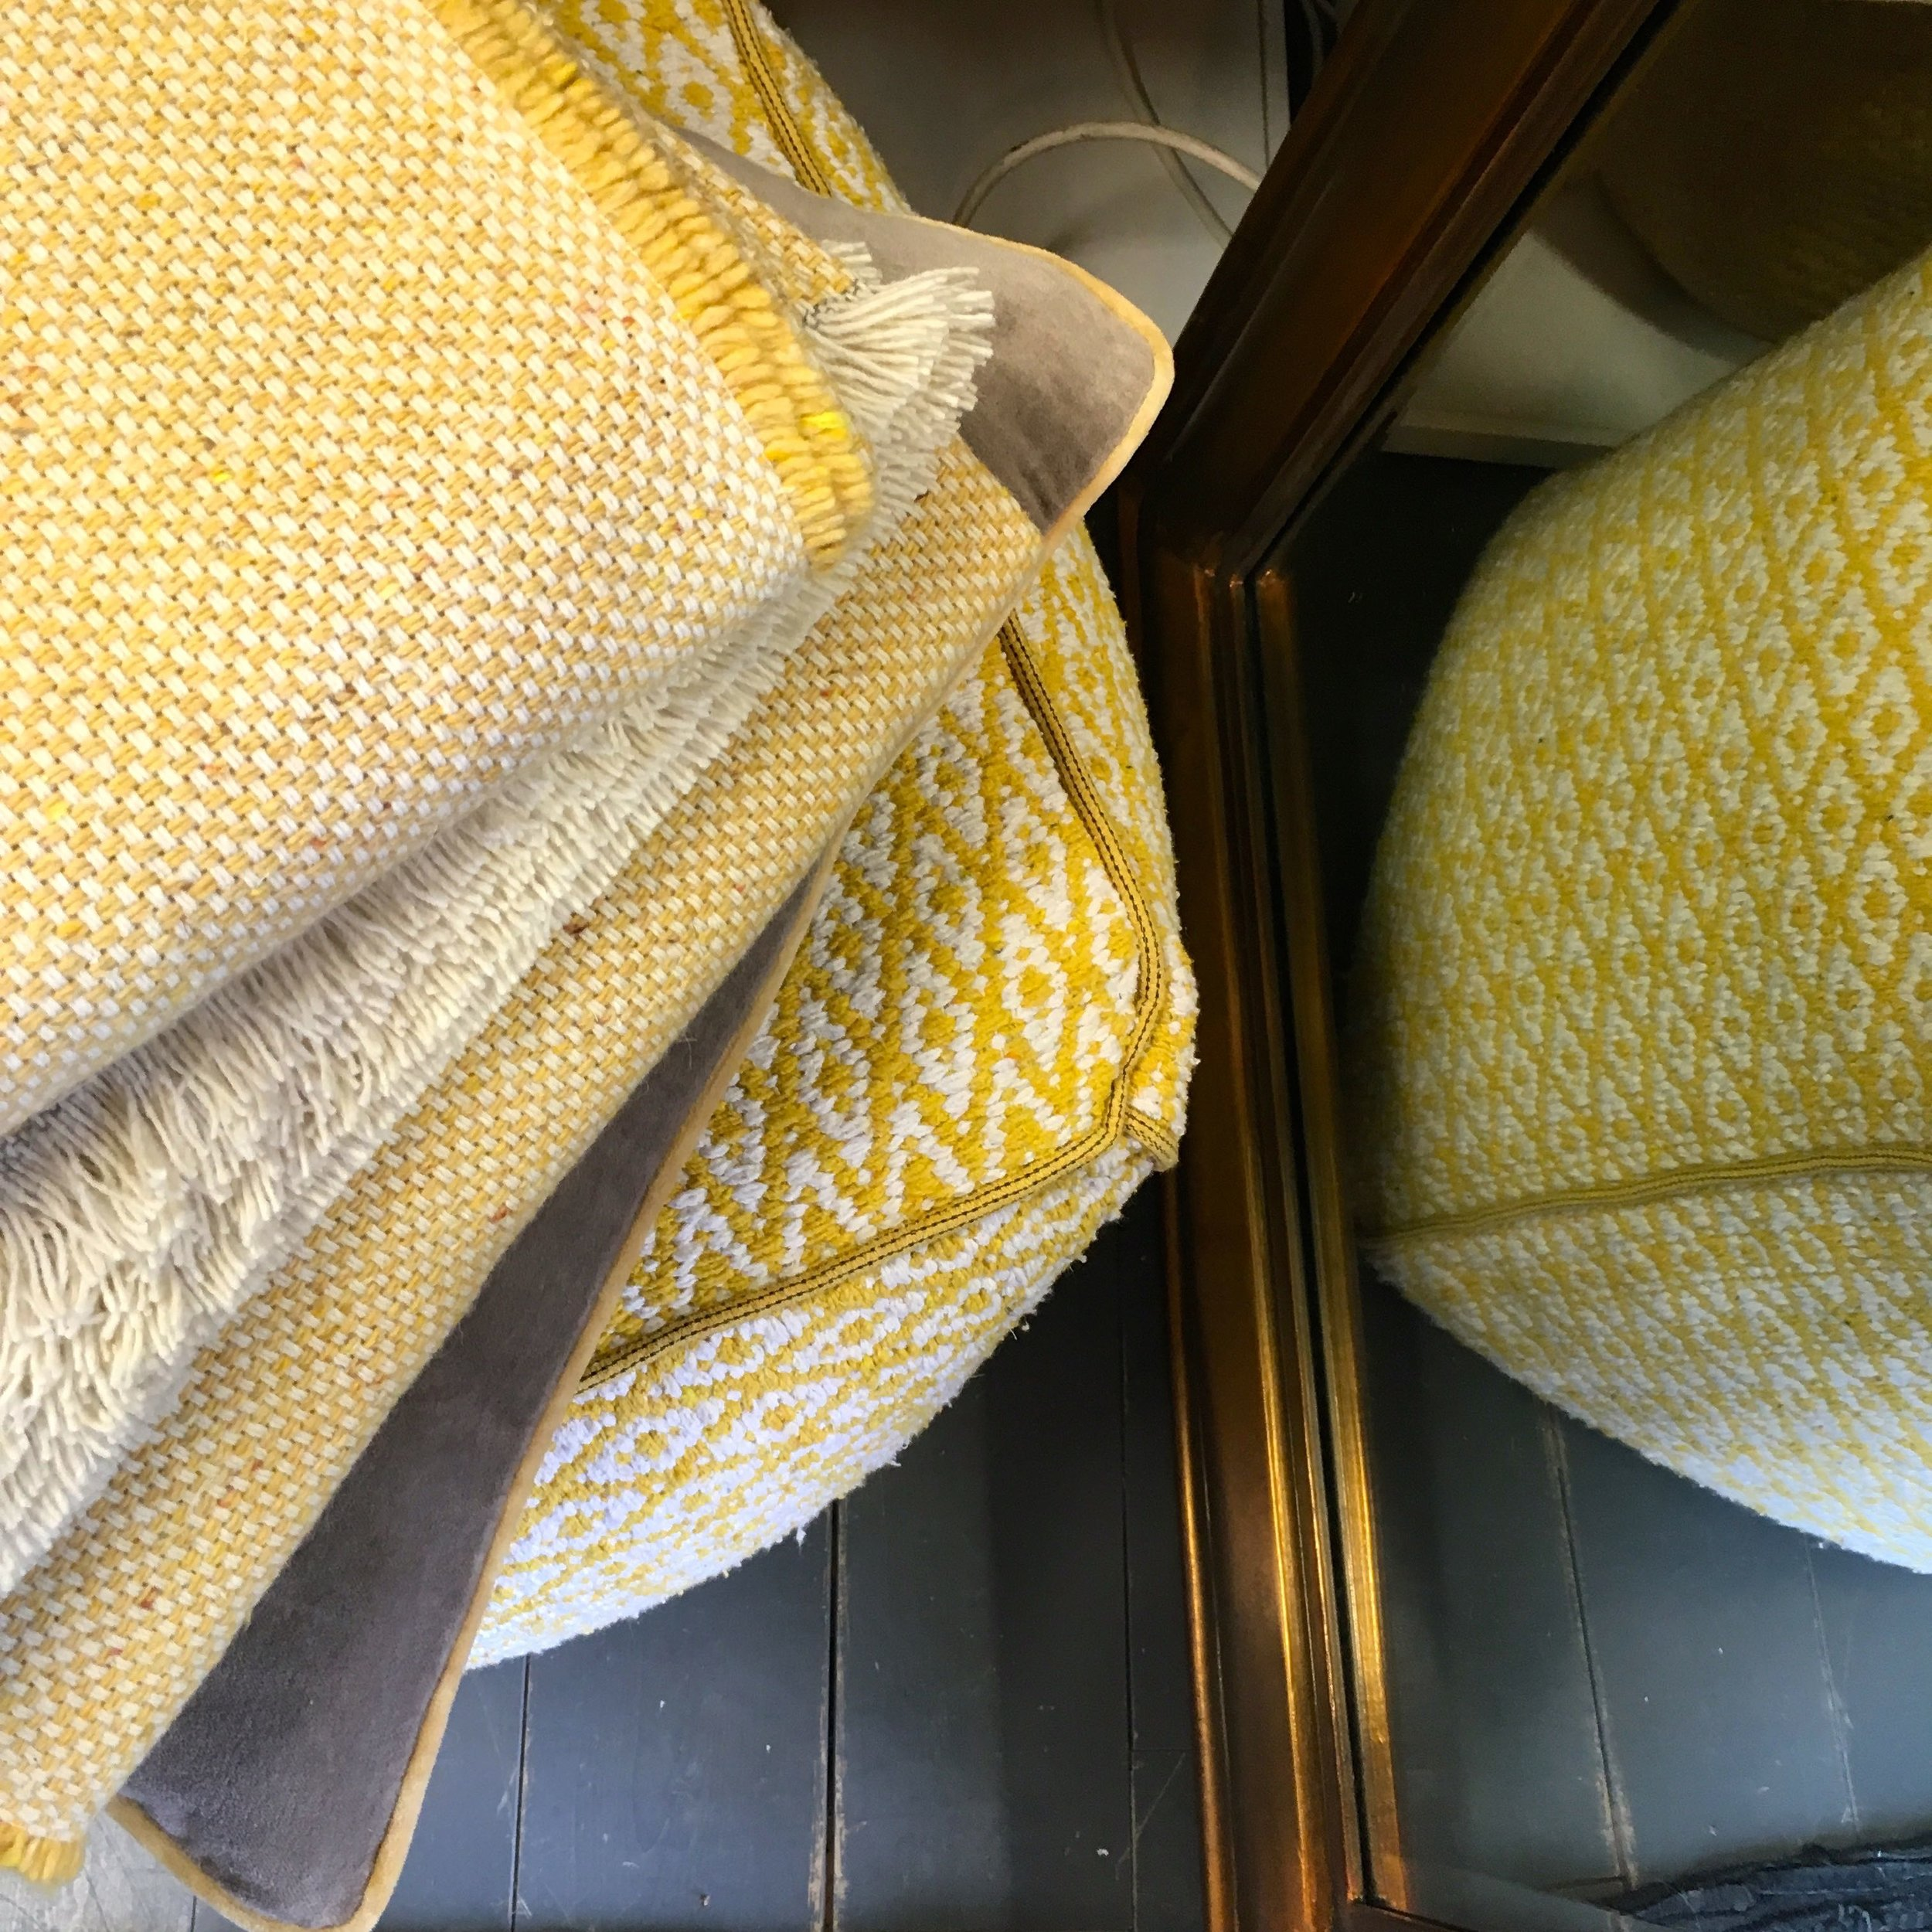 Textured blankets and pouffes